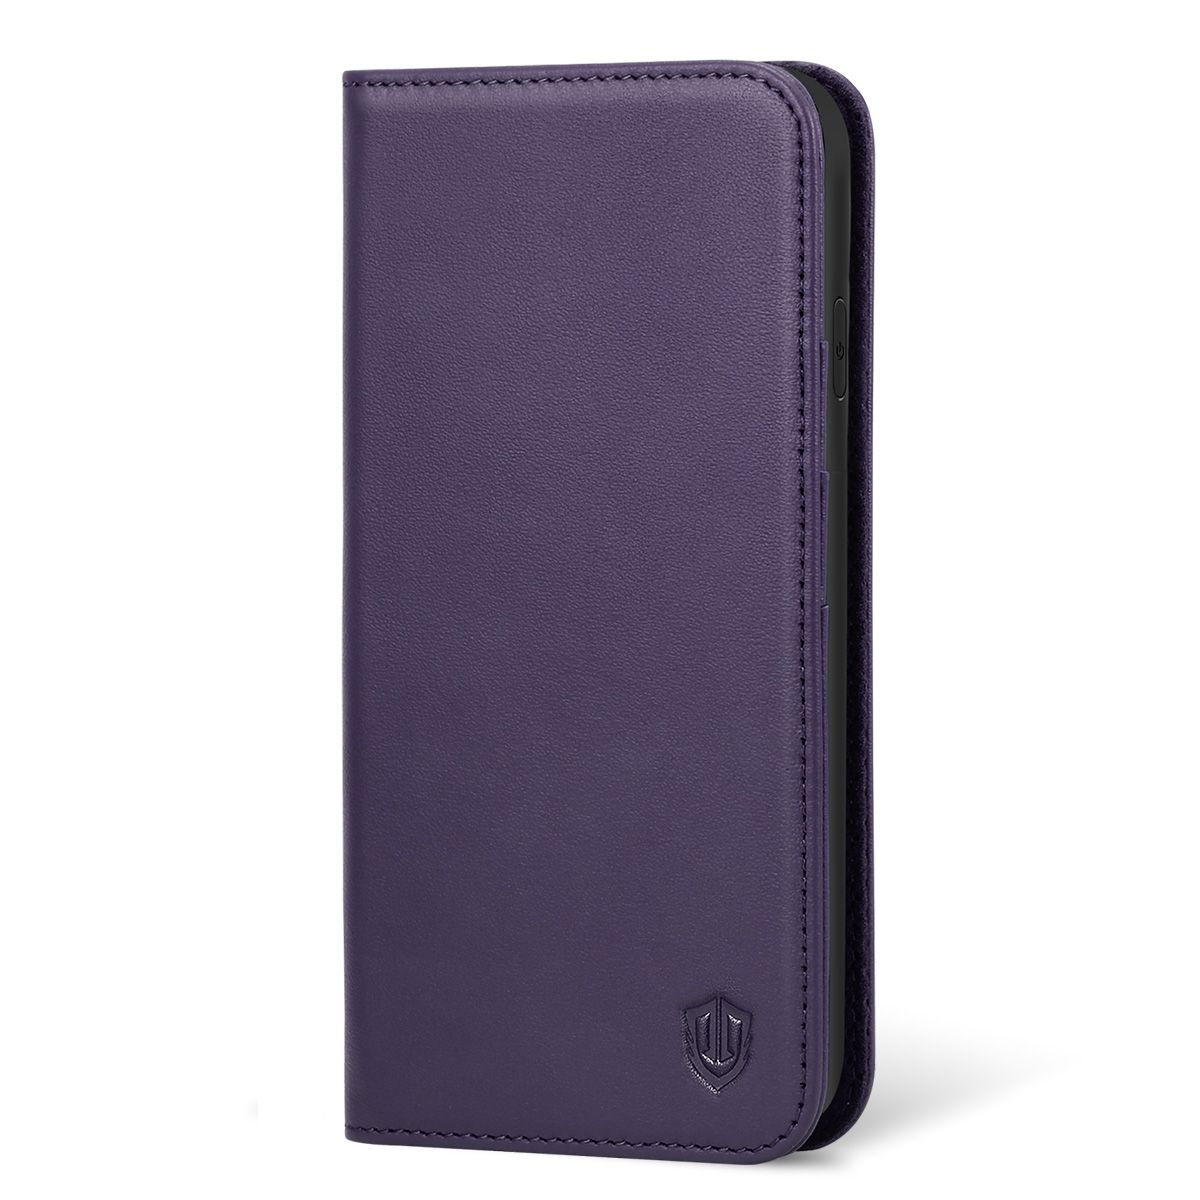 finest selection 20877 ca241 SHIELDON iPhone XR Leather Case, iPhone 10R Genuine Leather Folio Wallet  Magnetic Protective Case with Shock Absorbing, RFID Blocking, Card Holder,  ...